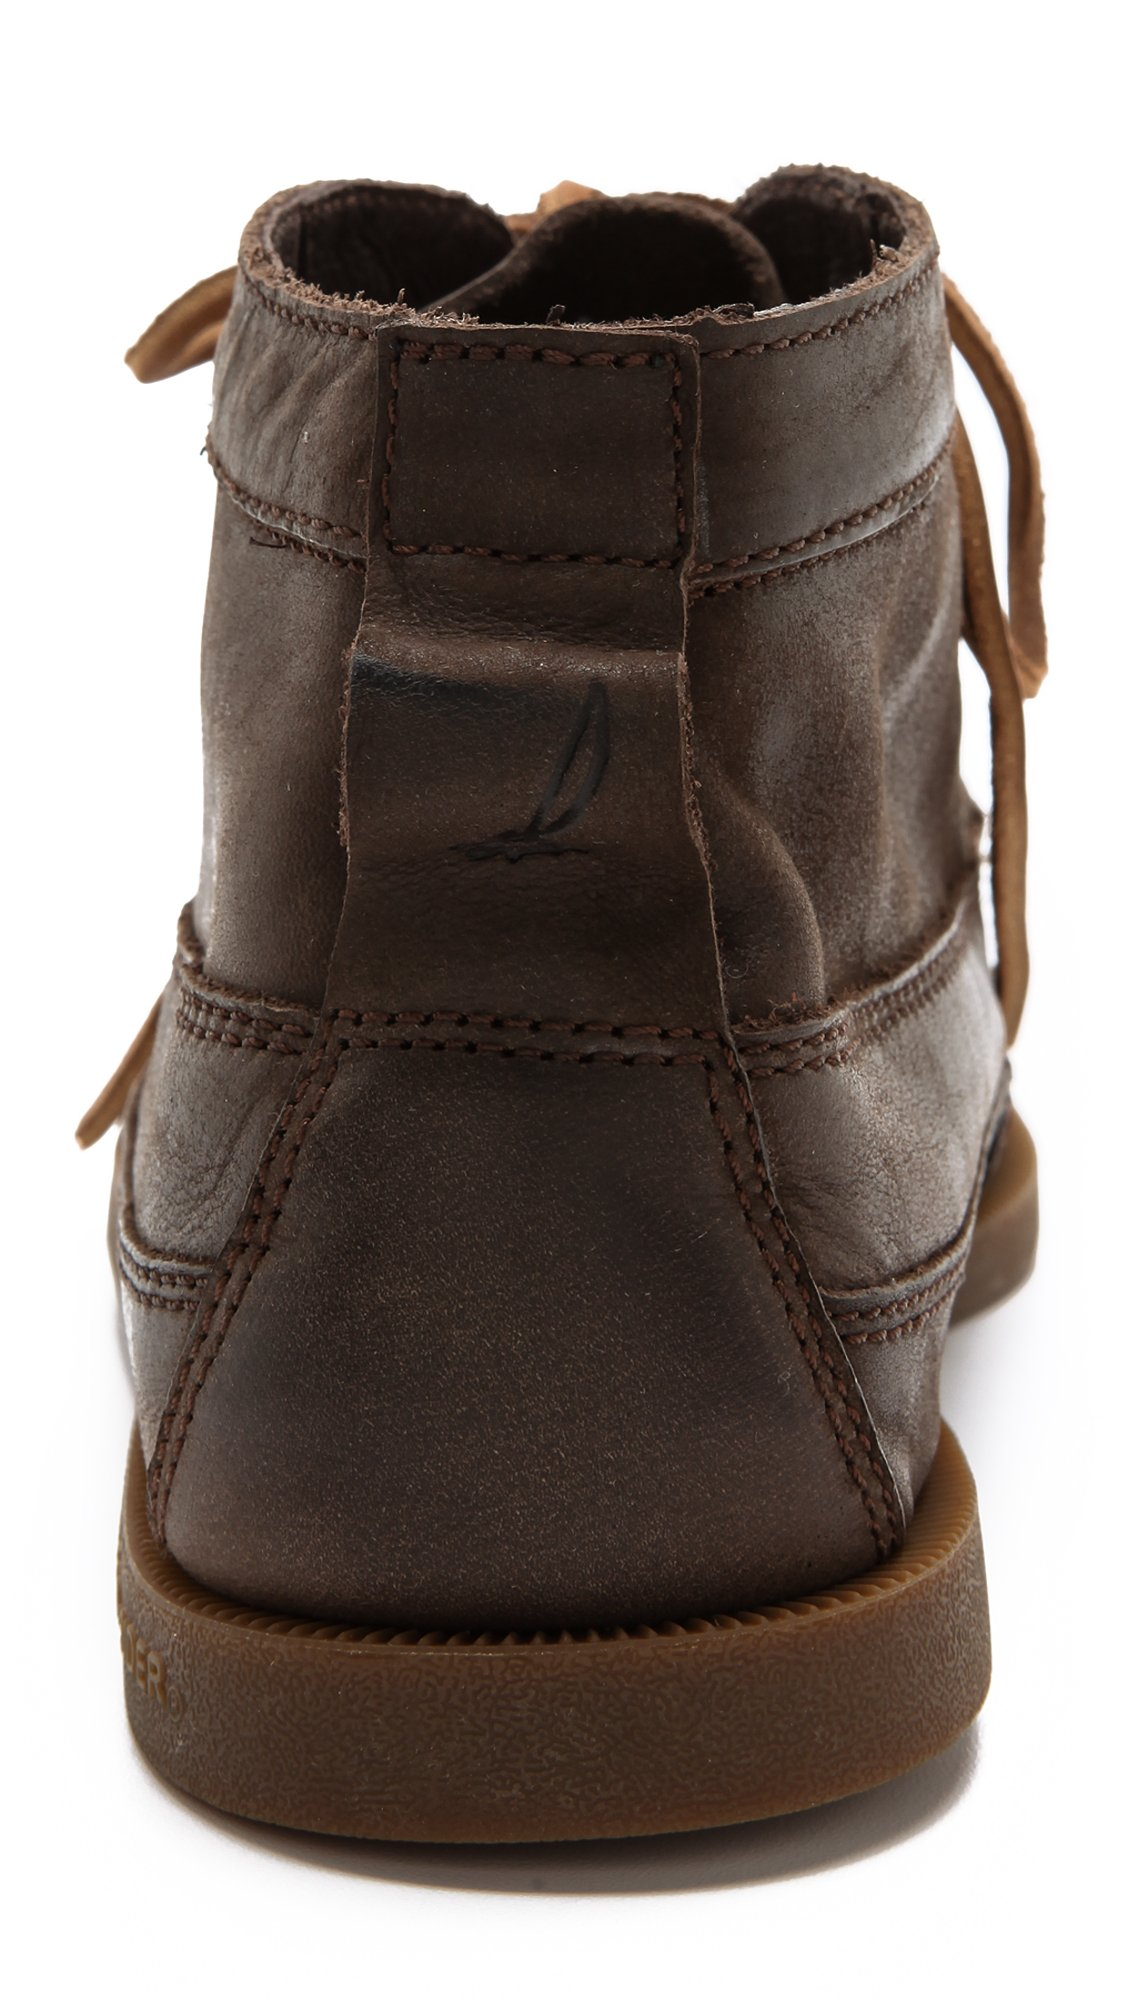 Beautiful Sperryu00ae For J.Crew Leather Chukka Boots  Men Boots | J.Crew